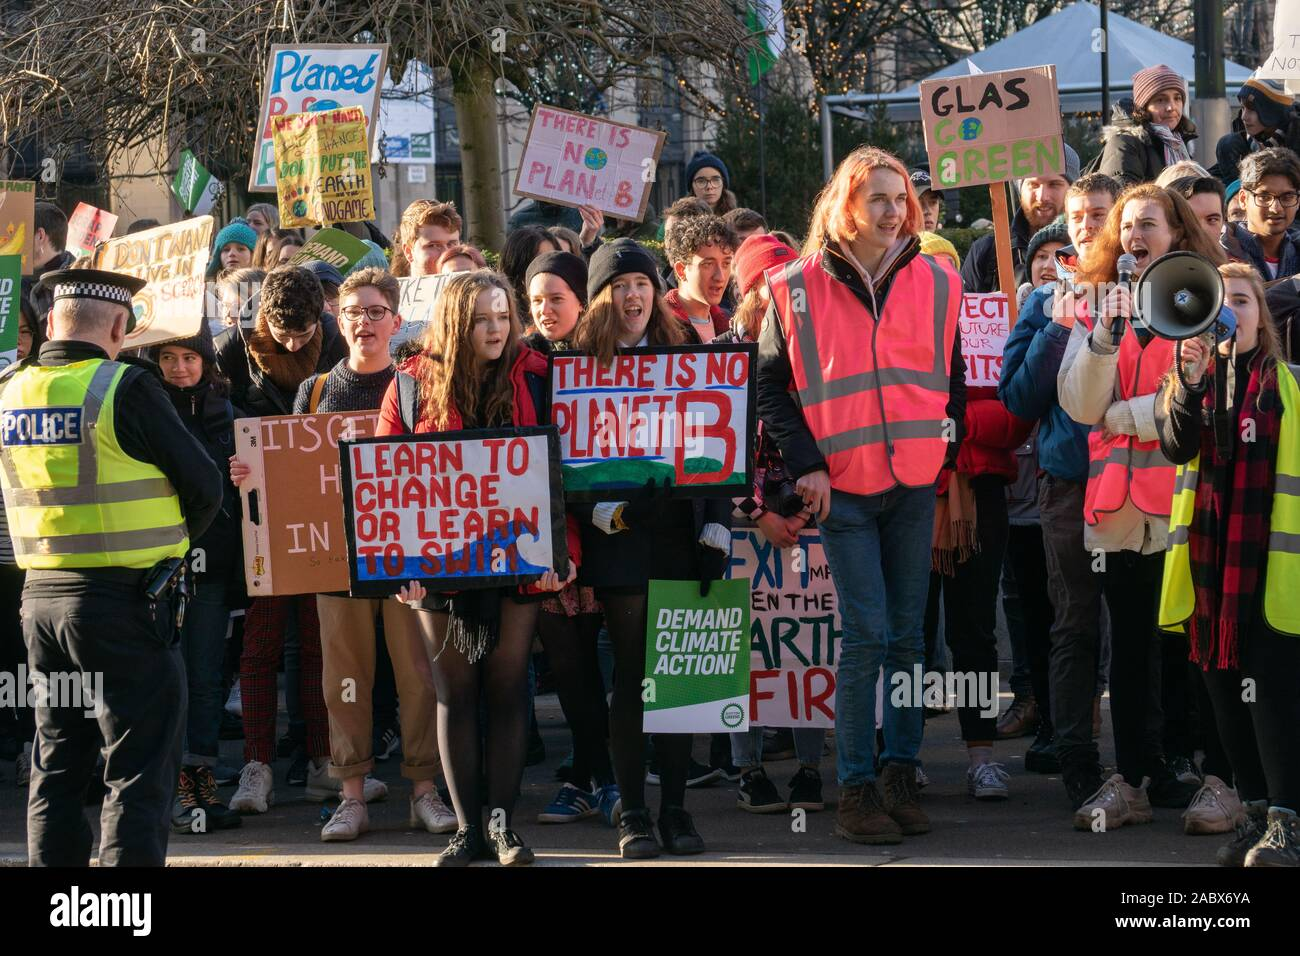 Glasgow, UK. 29th Nov, 2019. Students and school pupils taking part in the Youth Climate Strike protest today in George Square Glasgow. Credit: Richard Gass/Alamy Live News Stock Photo